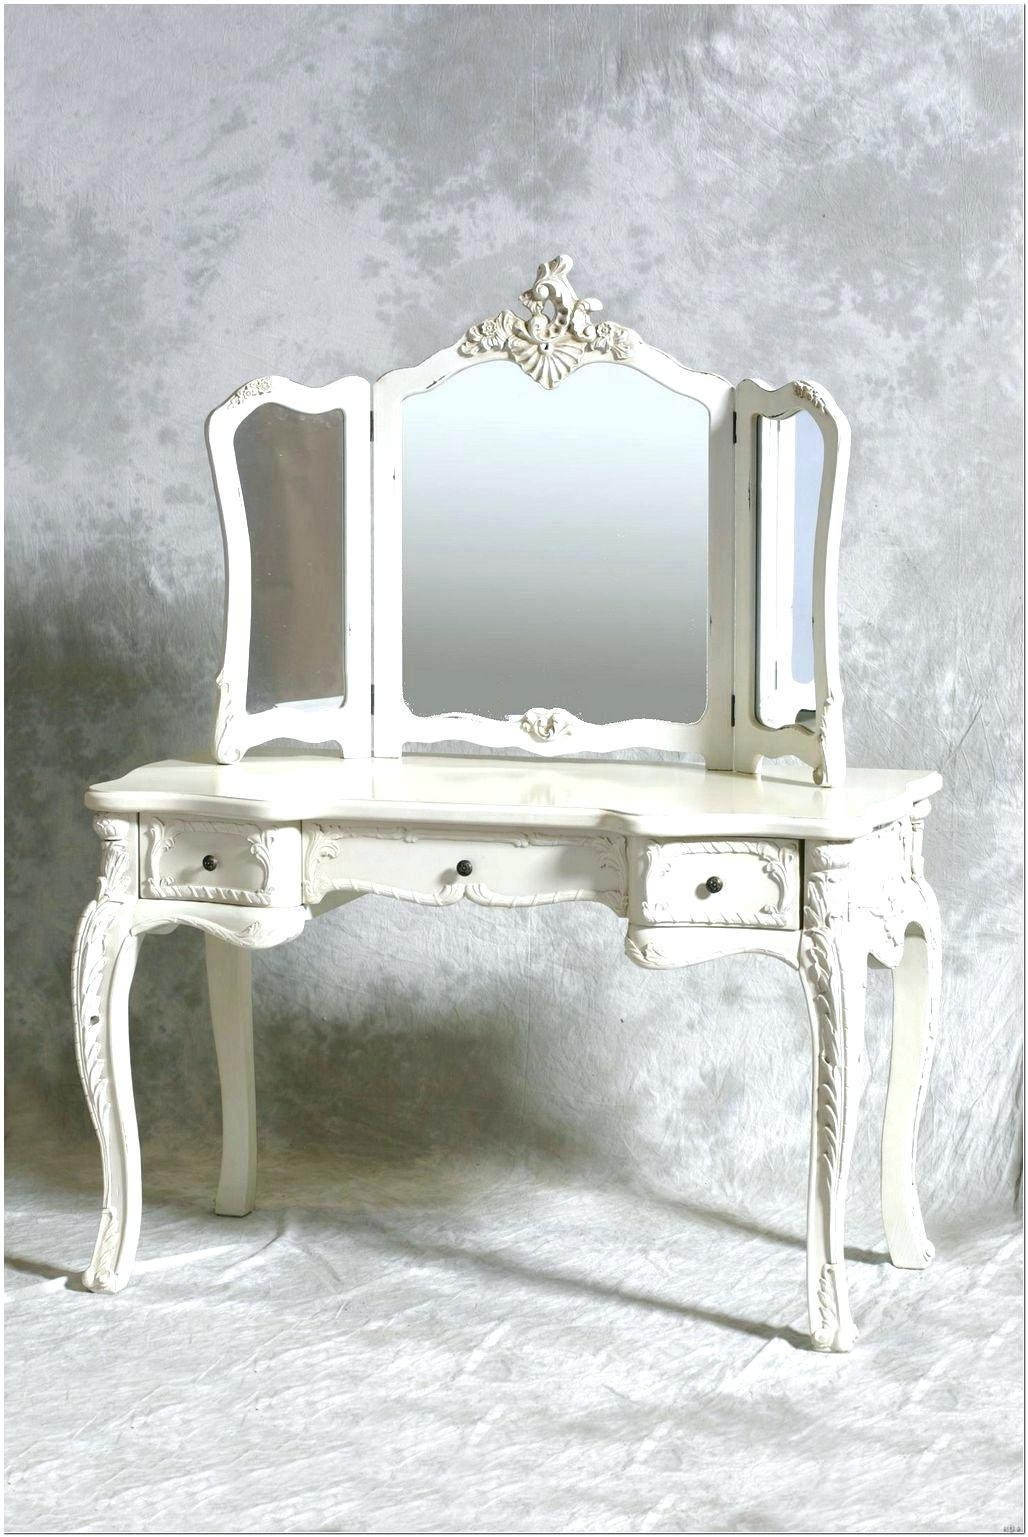 Stand Up Mirror Ideas Dressing Table Buffet Pitchloveco Regarding Small Table Mirror (Image 13 of 15)